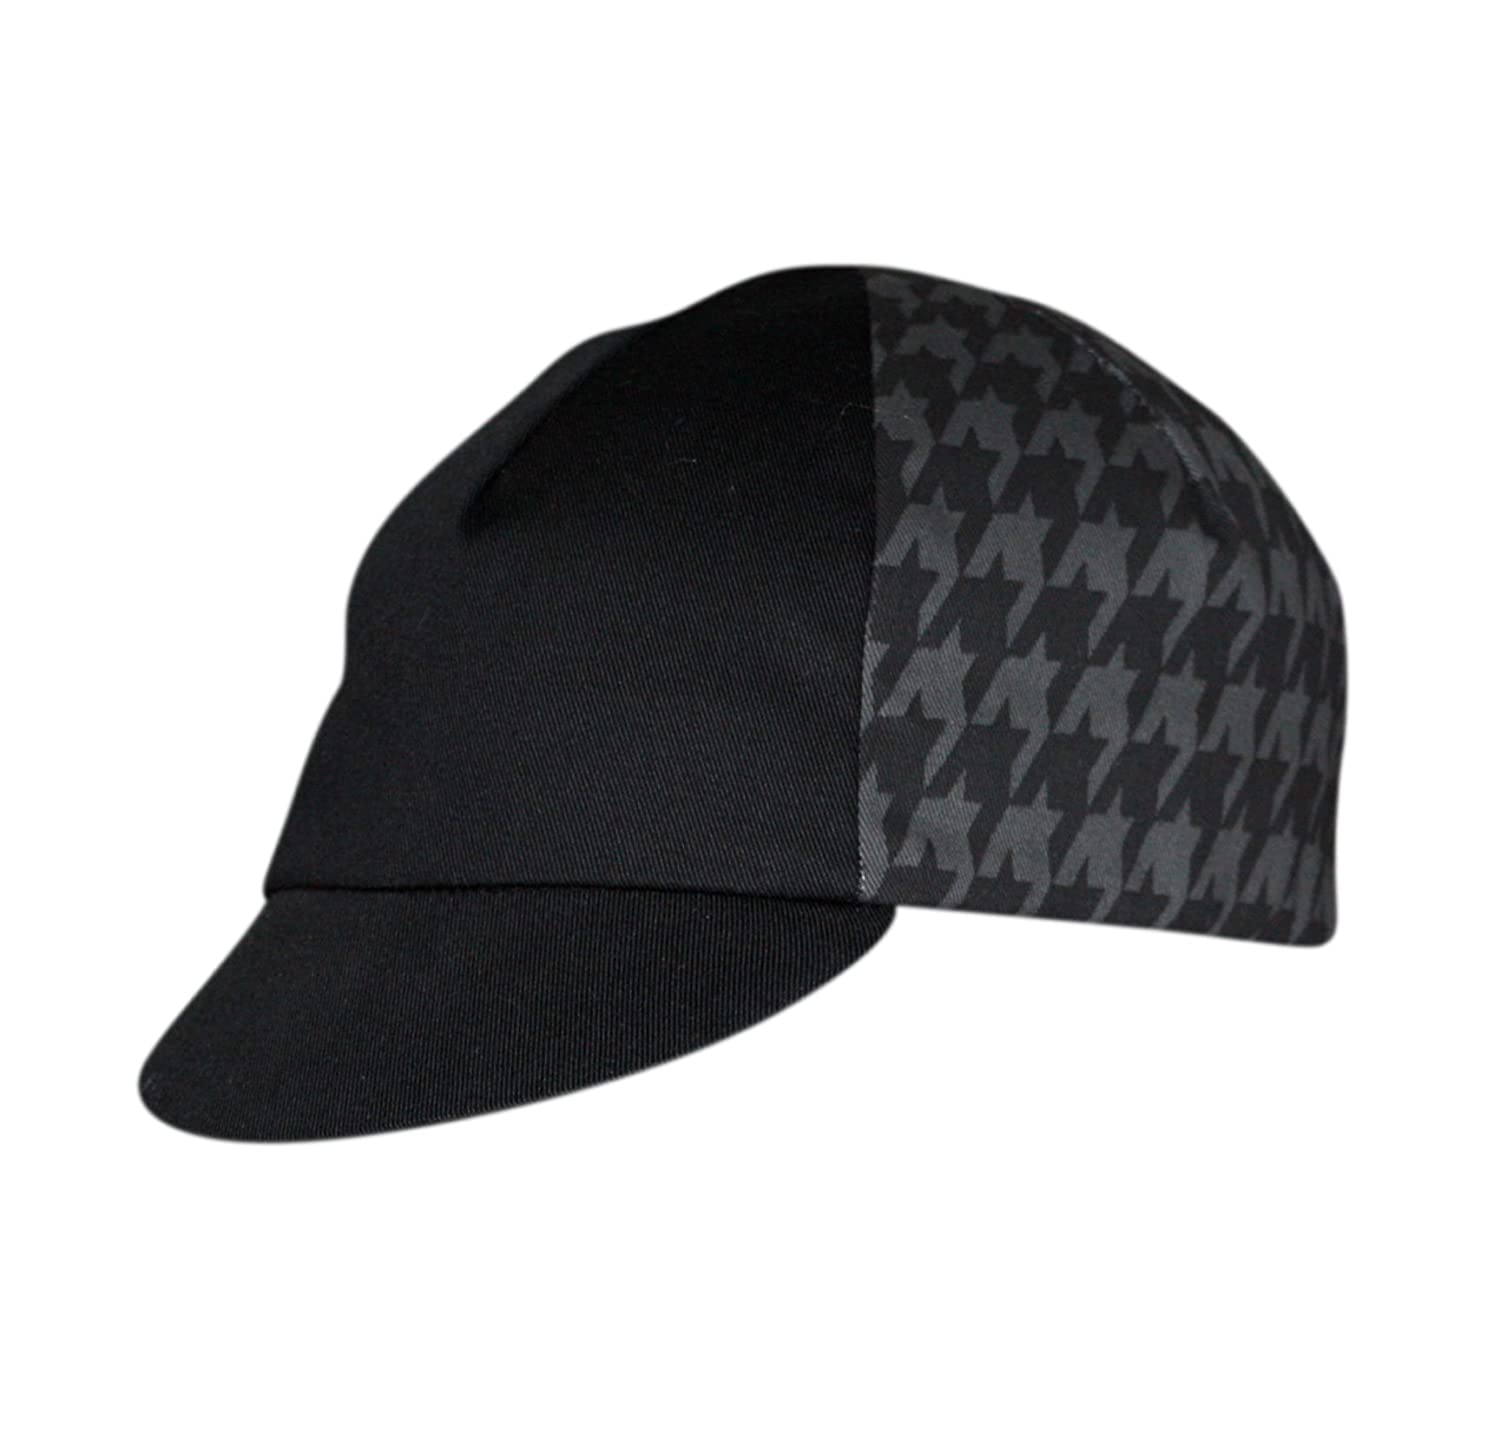 Pace Houndstooth Cycling Cap, Black/Gray 14-0251